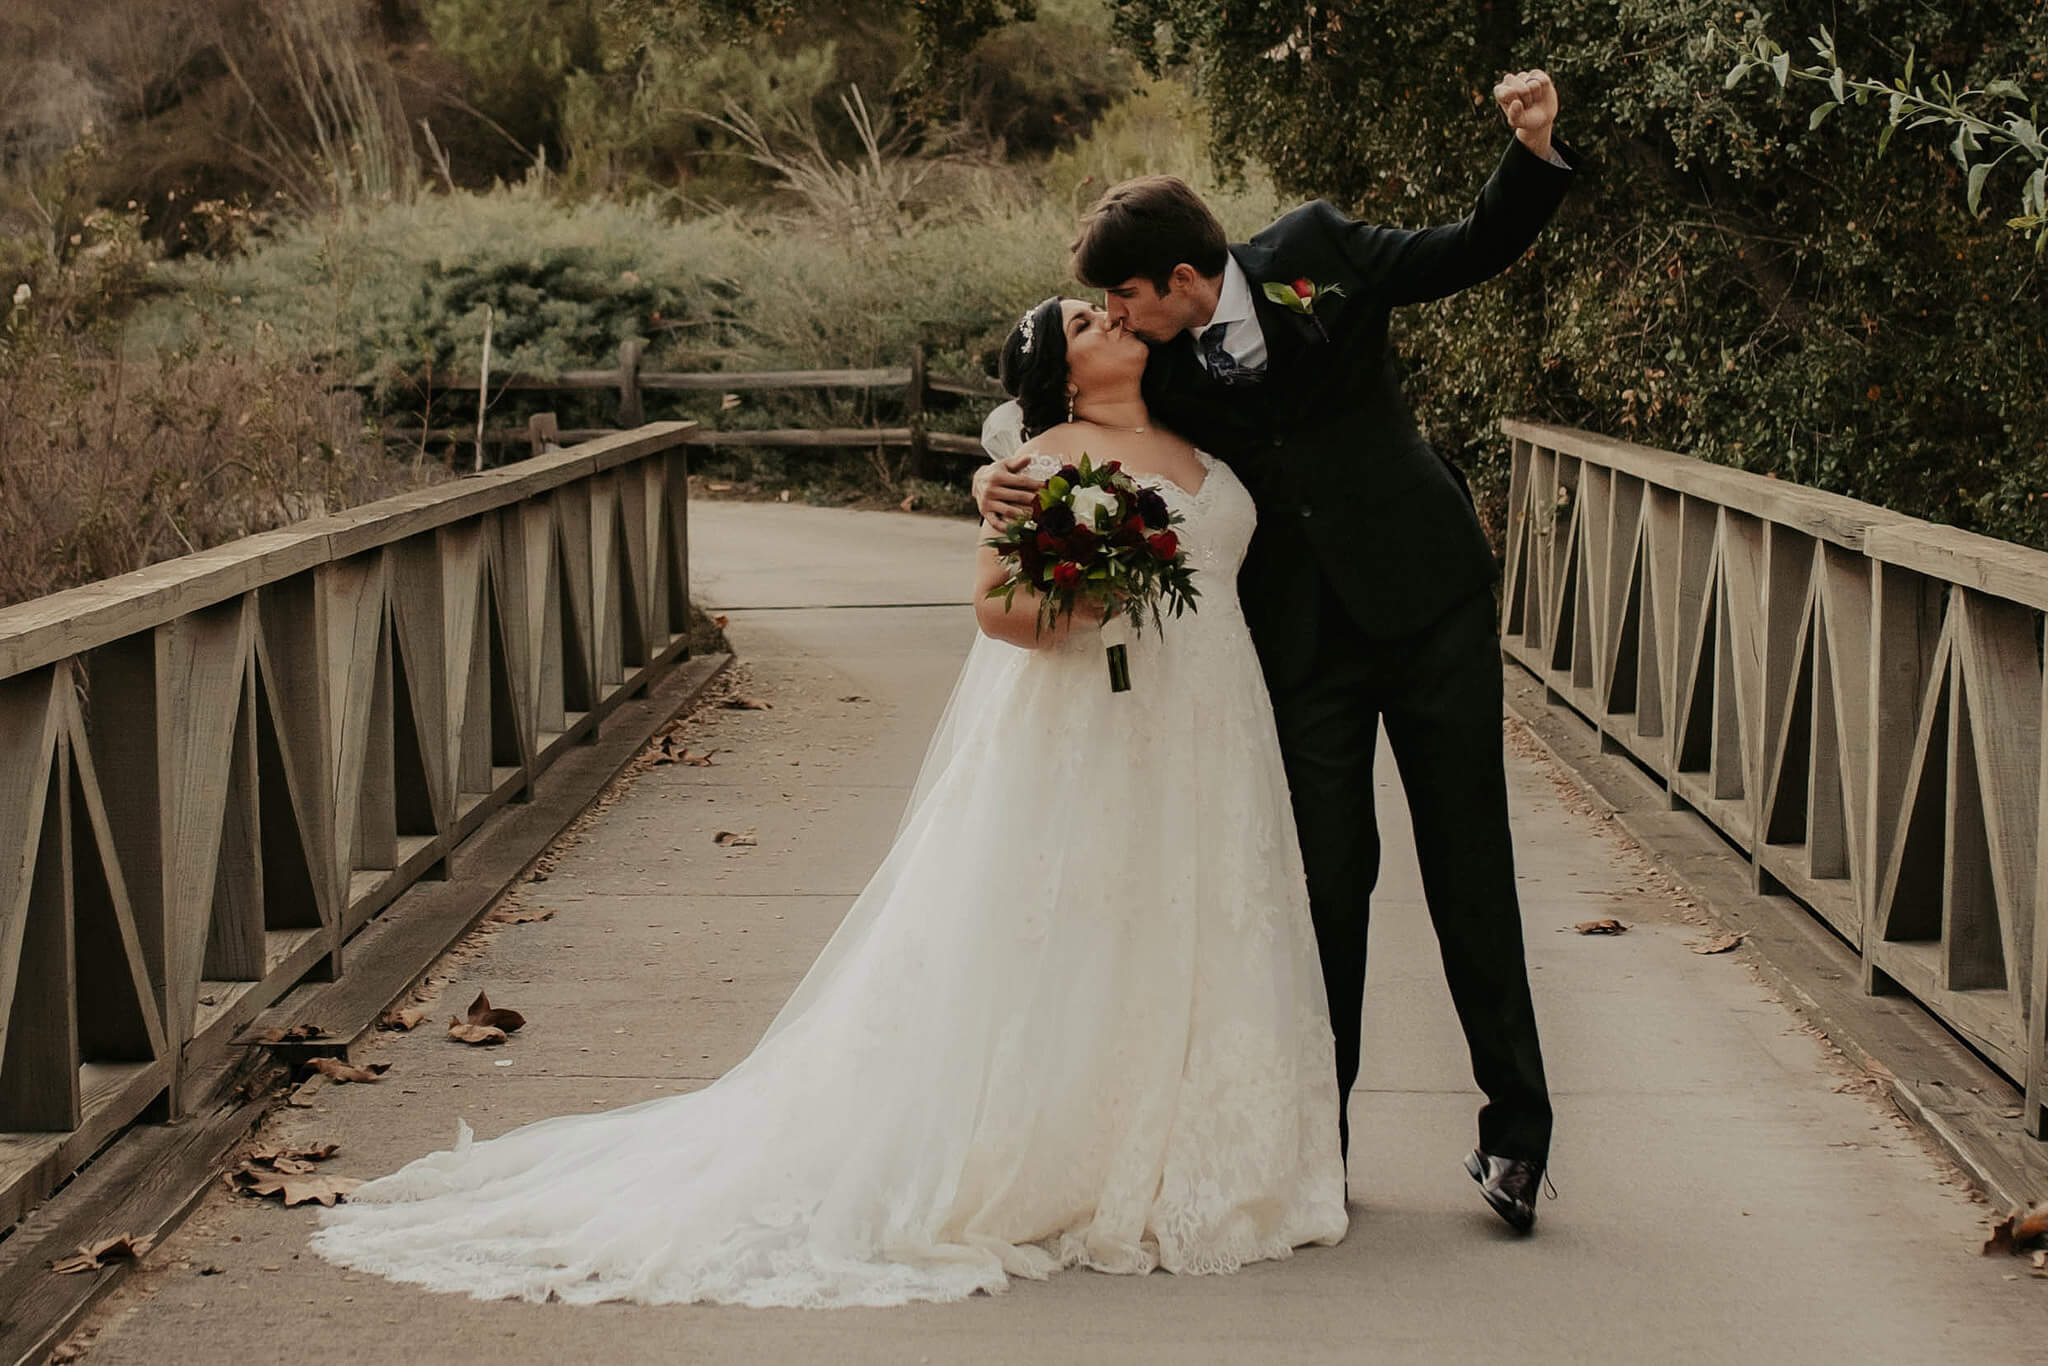 The excitement is true when you finally married the love of your life